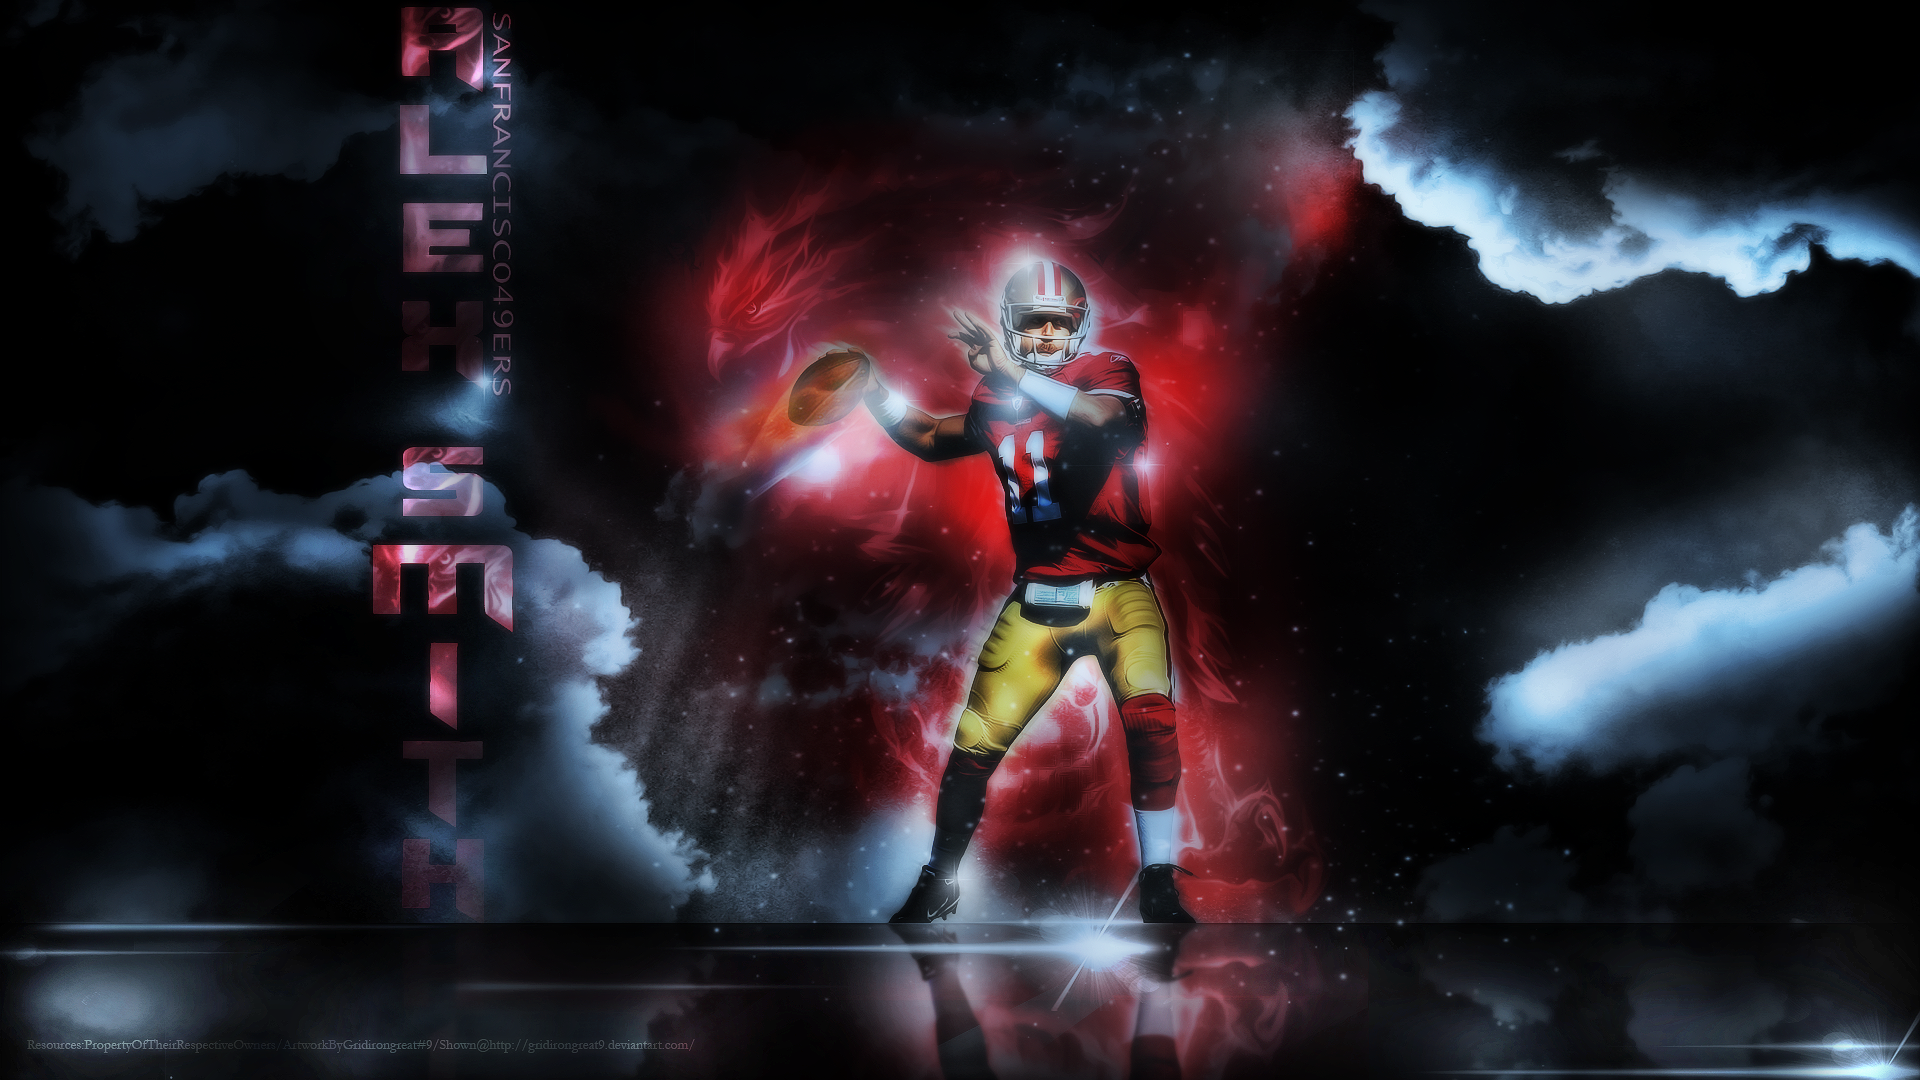 2011 new 49ers graphics photoshop wallpapers schedules page 49ers graphics photoshop wallpapers schedules page 3 49ers webzone forum voltagebd Image collections